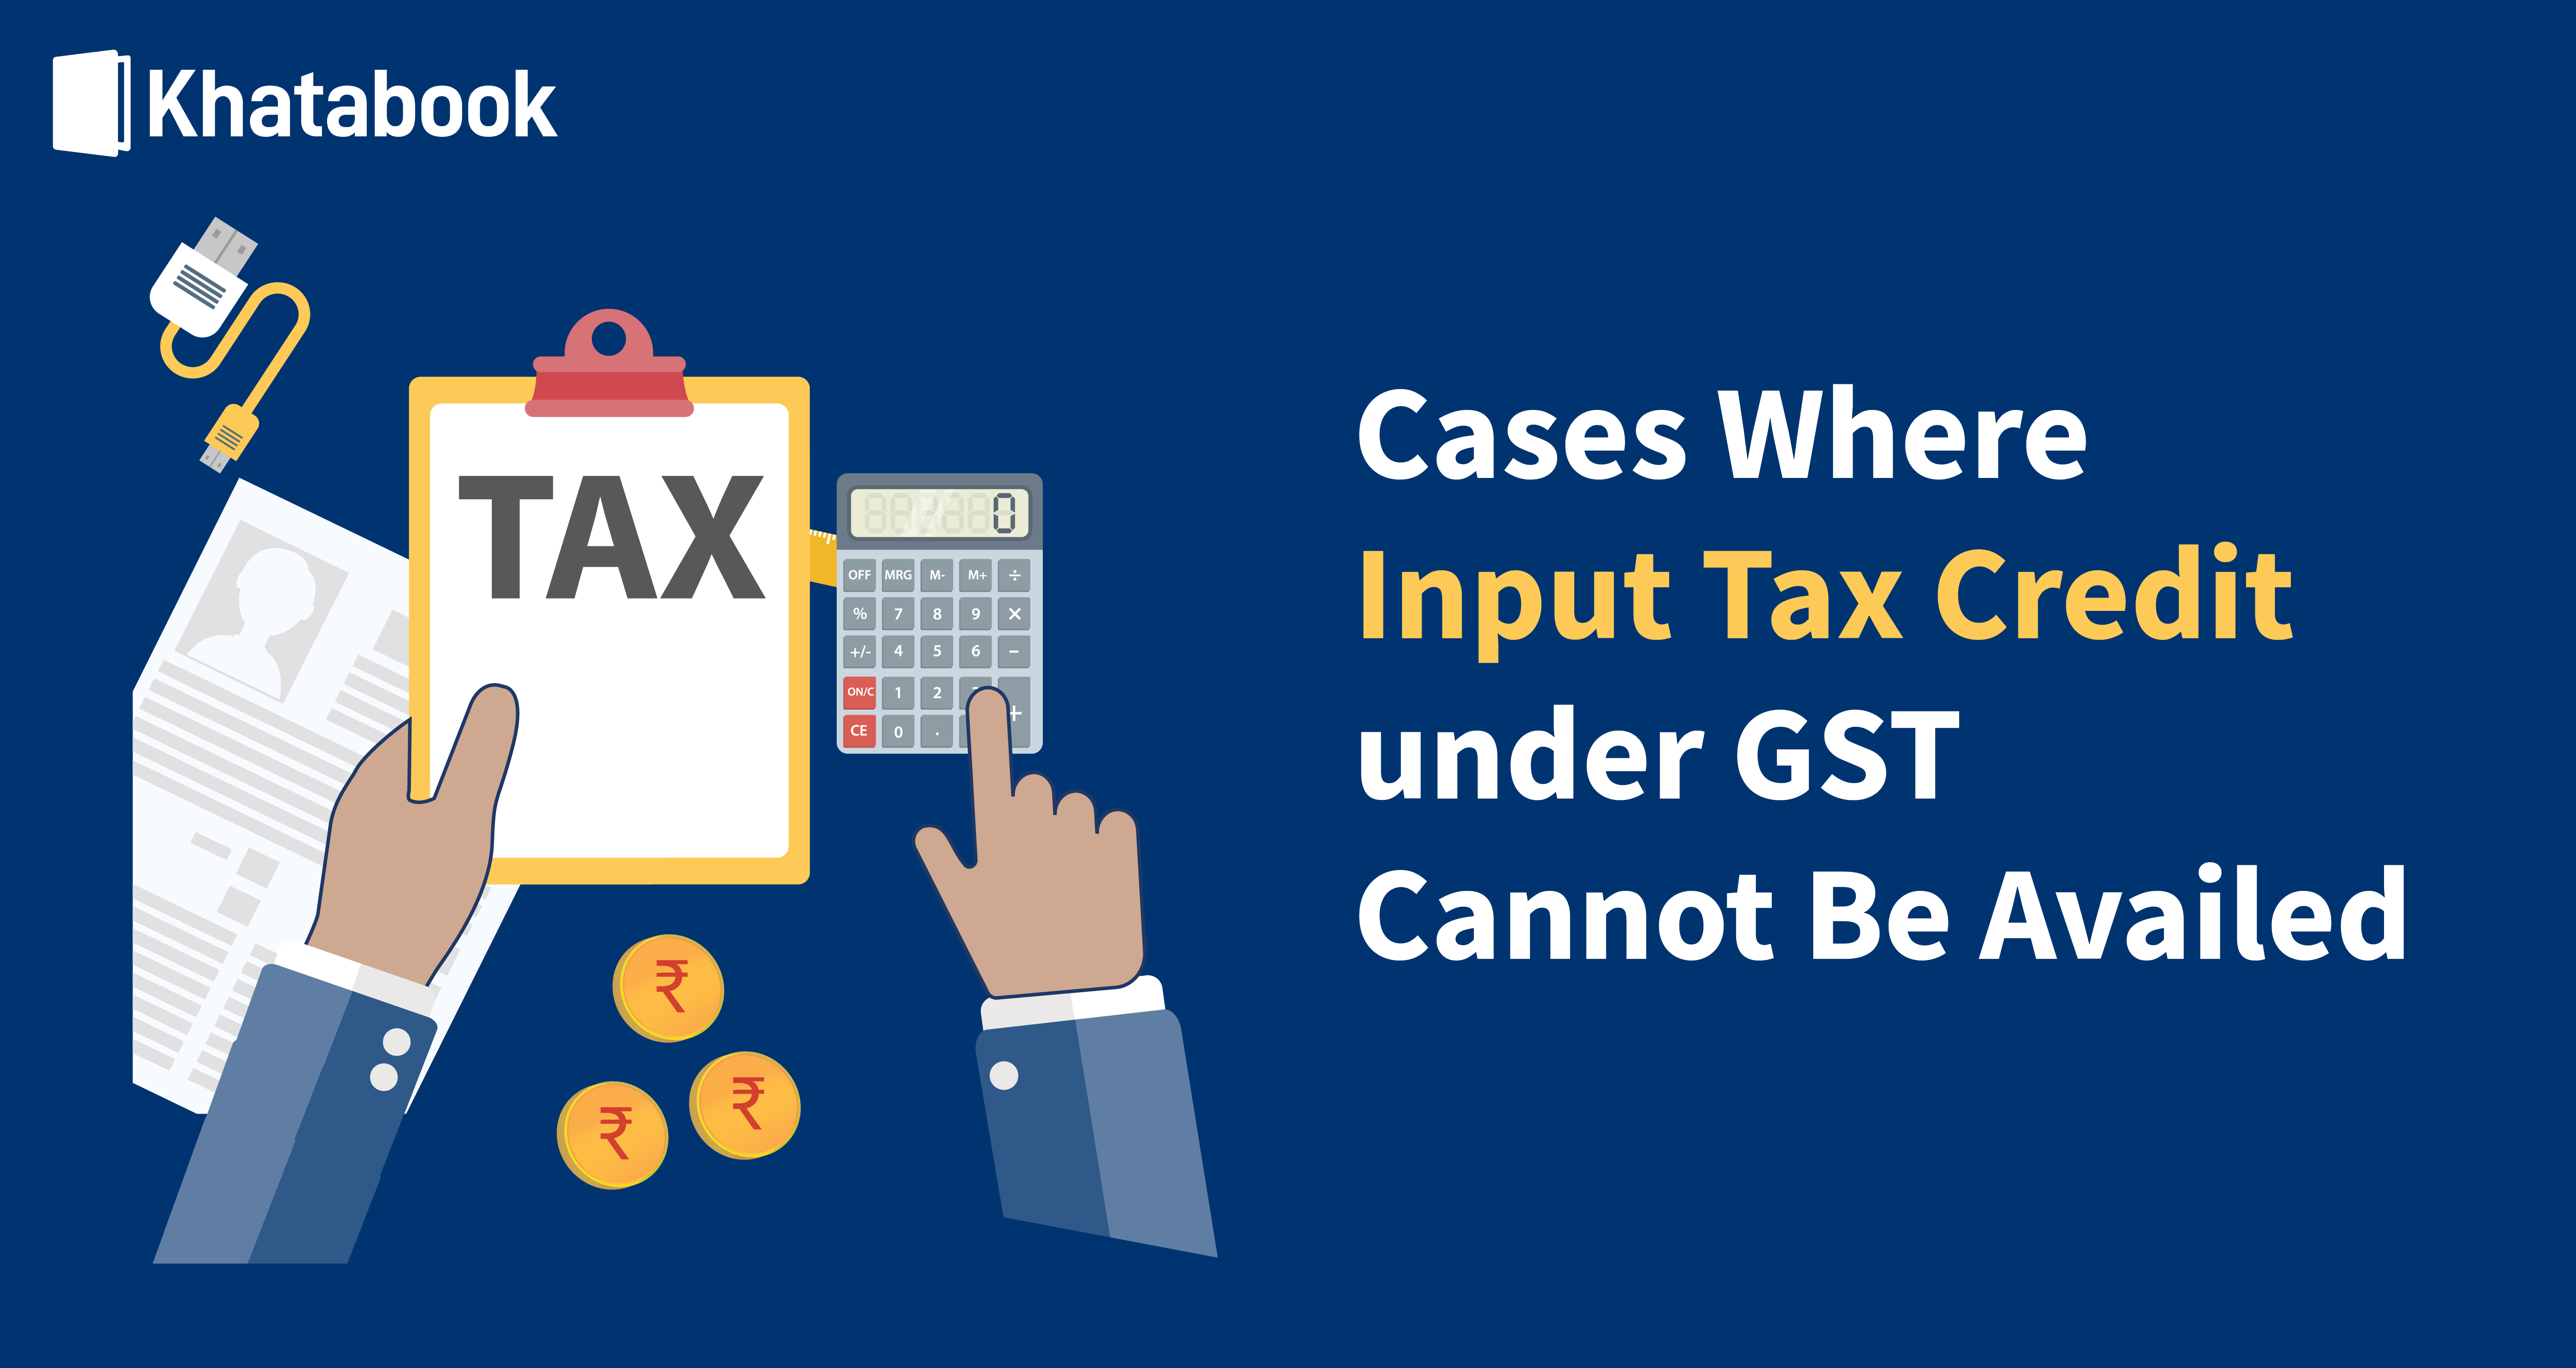 Where Can Input Tax Credit under GST Not Be Availed?